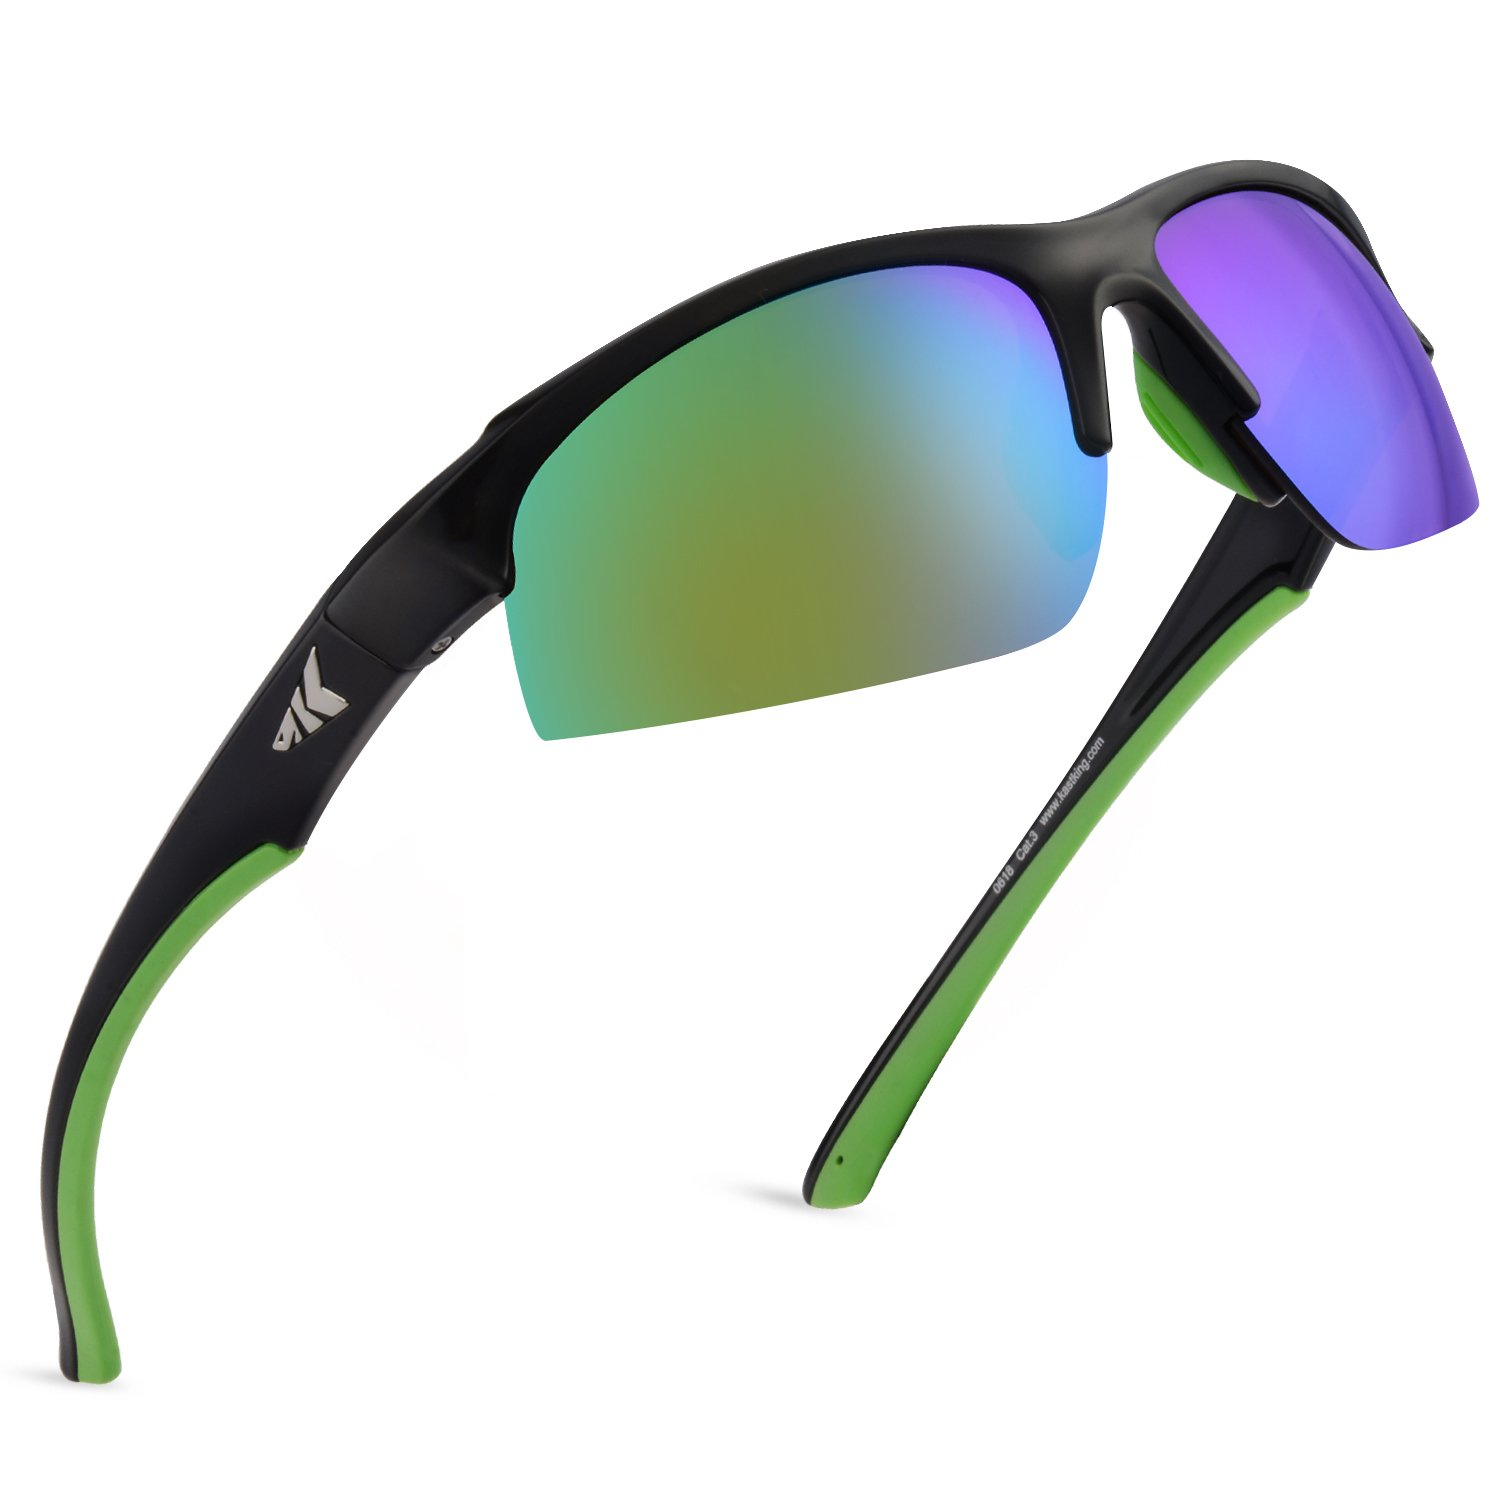 d1800296c3a4 Amazon.com: KastKing Cuivre Polarized Sport Sunglasses for Men and  Women,Ideal for Driving Fishing Cycling and Running,UV Protection: Sports &  Outdoors